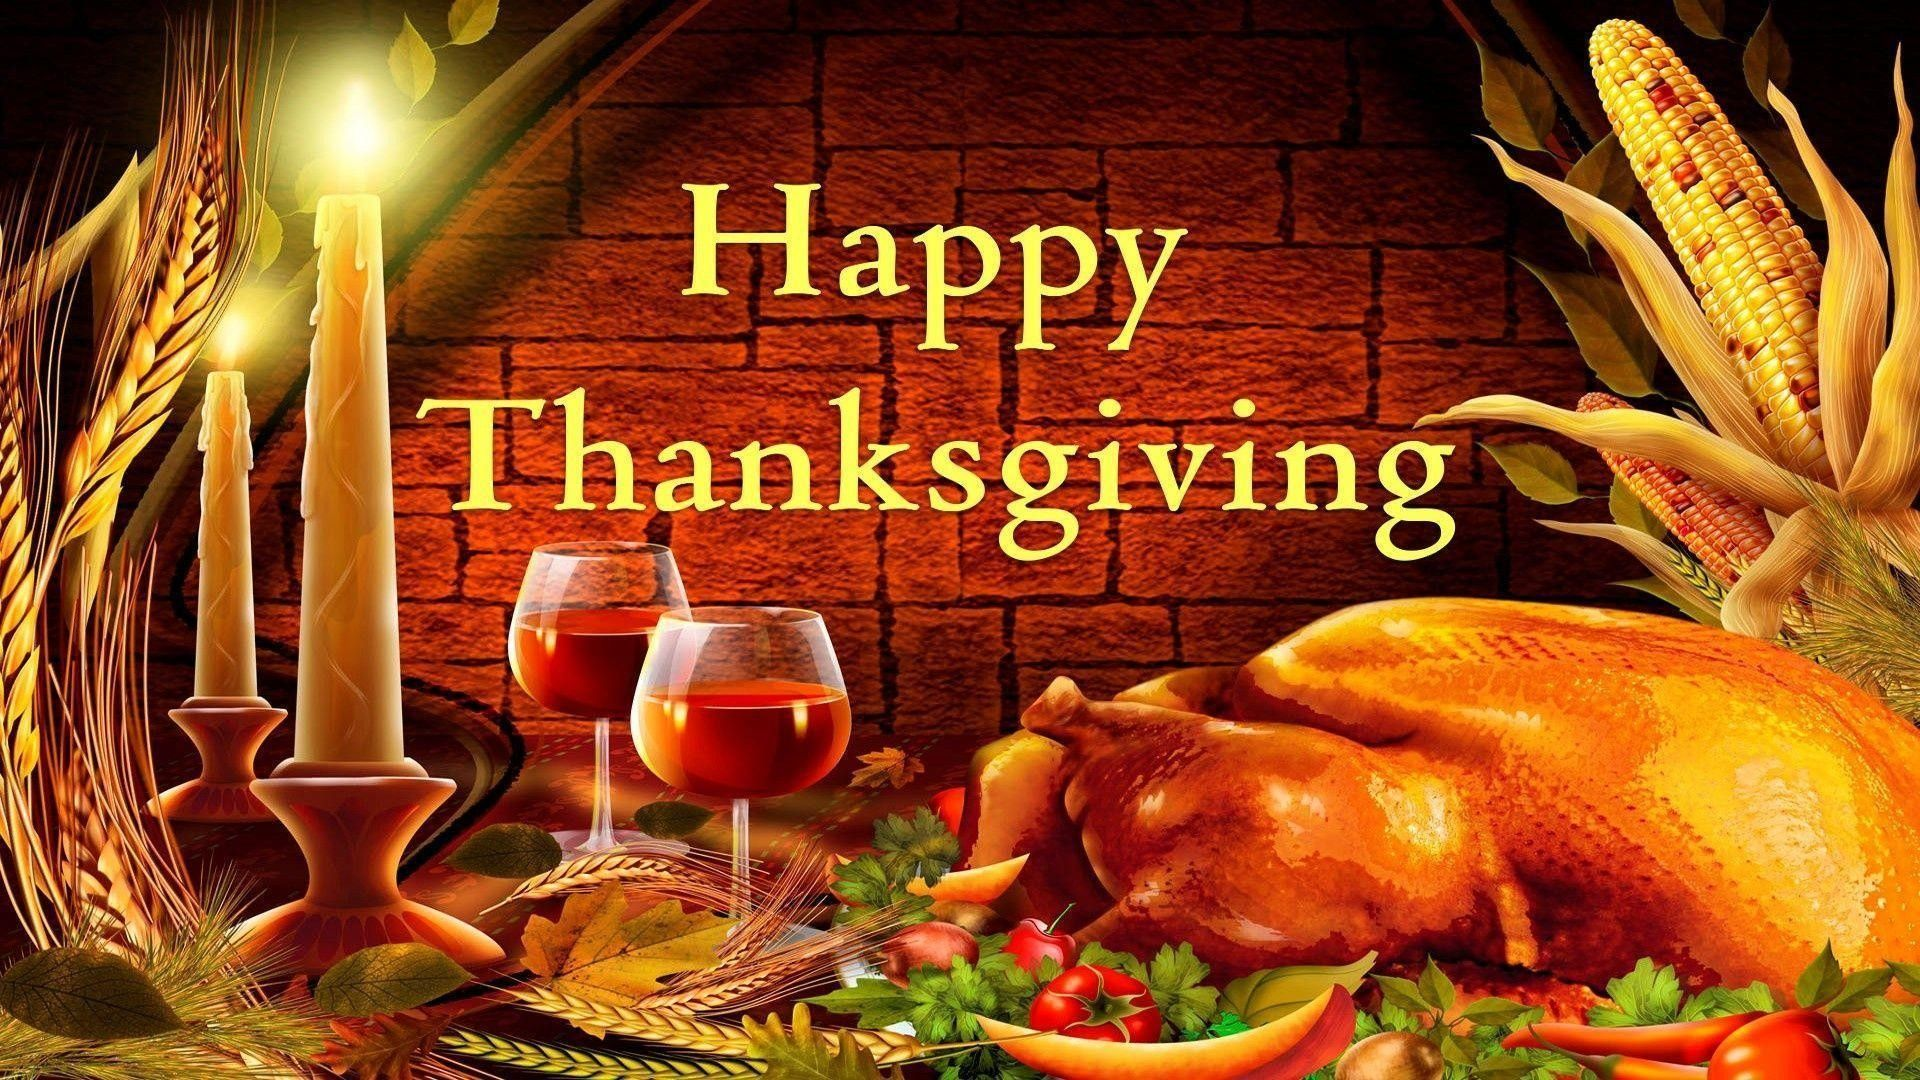 Happy Thanksgiving Wallpapers FREE Pictures on GreePX